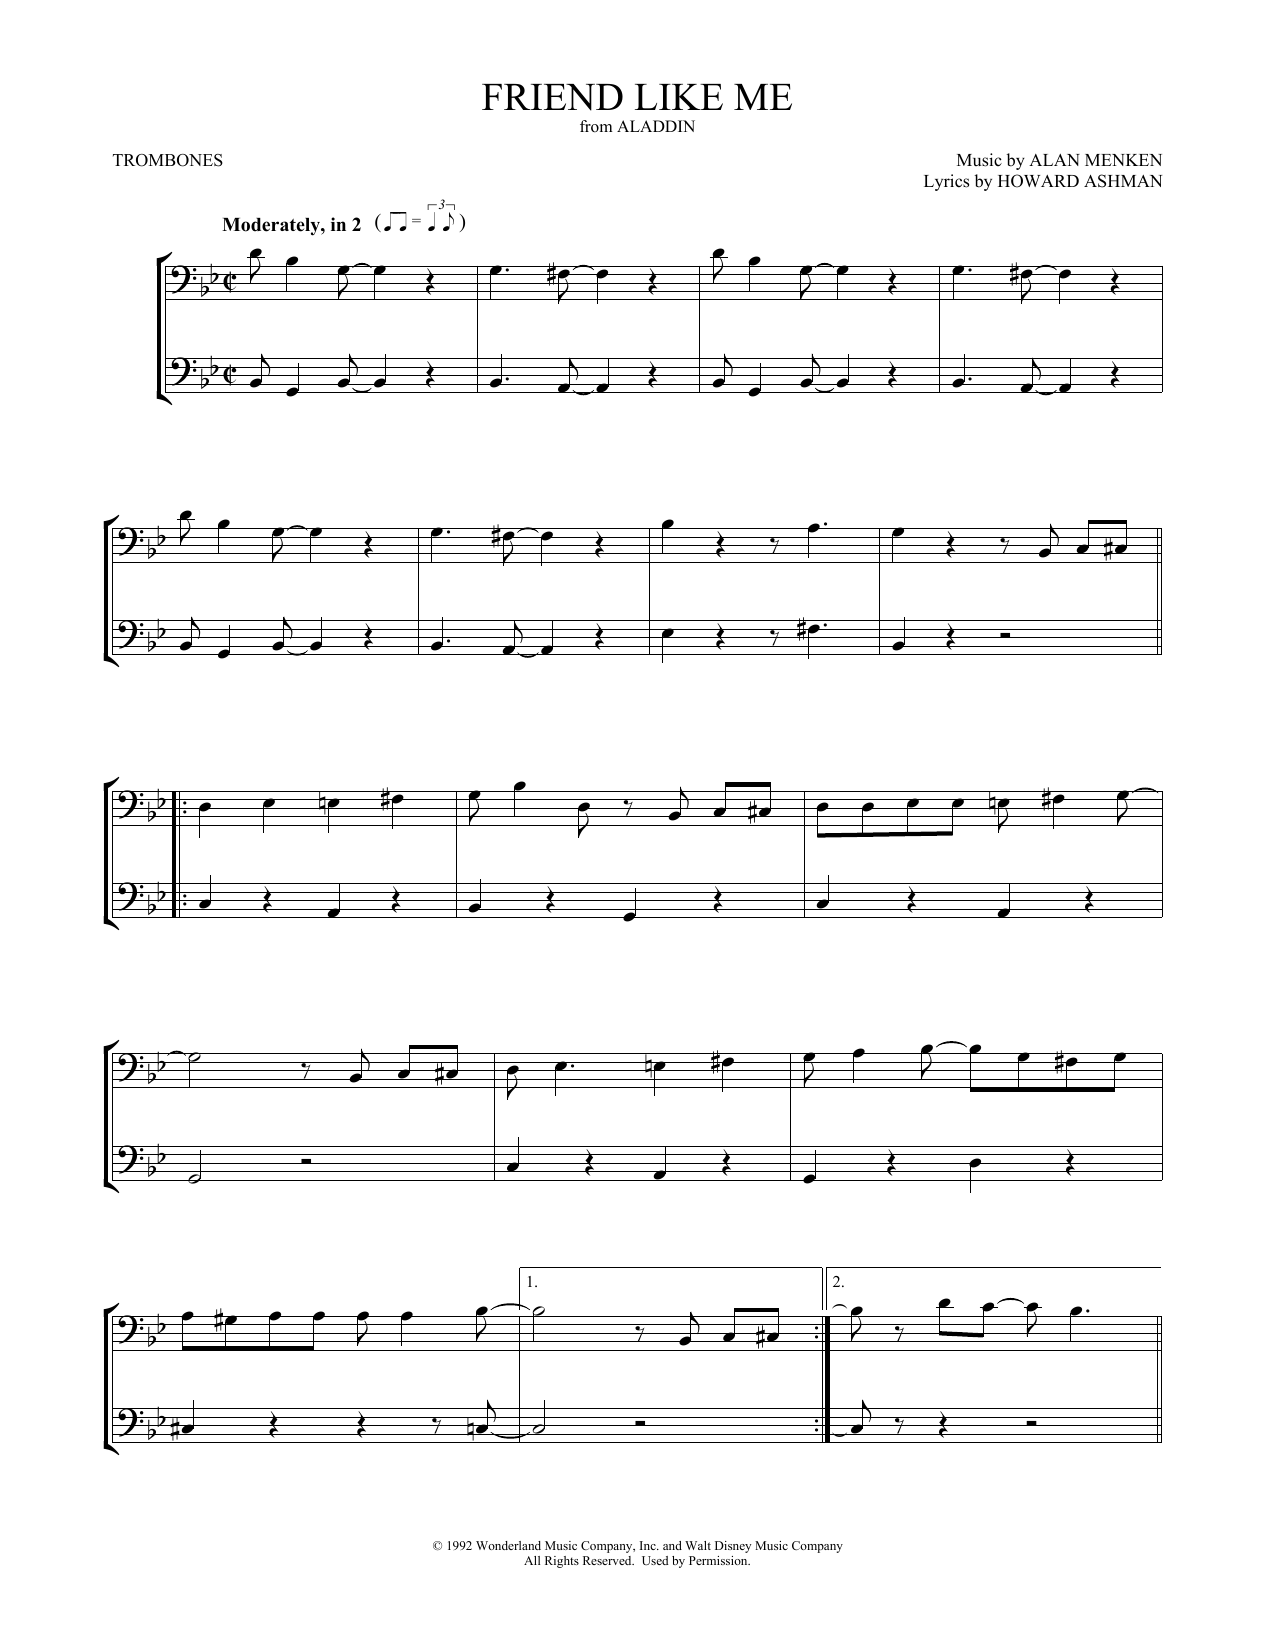 photo relating to Free Printable Trombone Sheet Music named Alan Menken Good friend Together with Me (versus Aladdin) Sheet Songs Notes, Chords  Down load Printable Trombone Duet - SKU: 414832